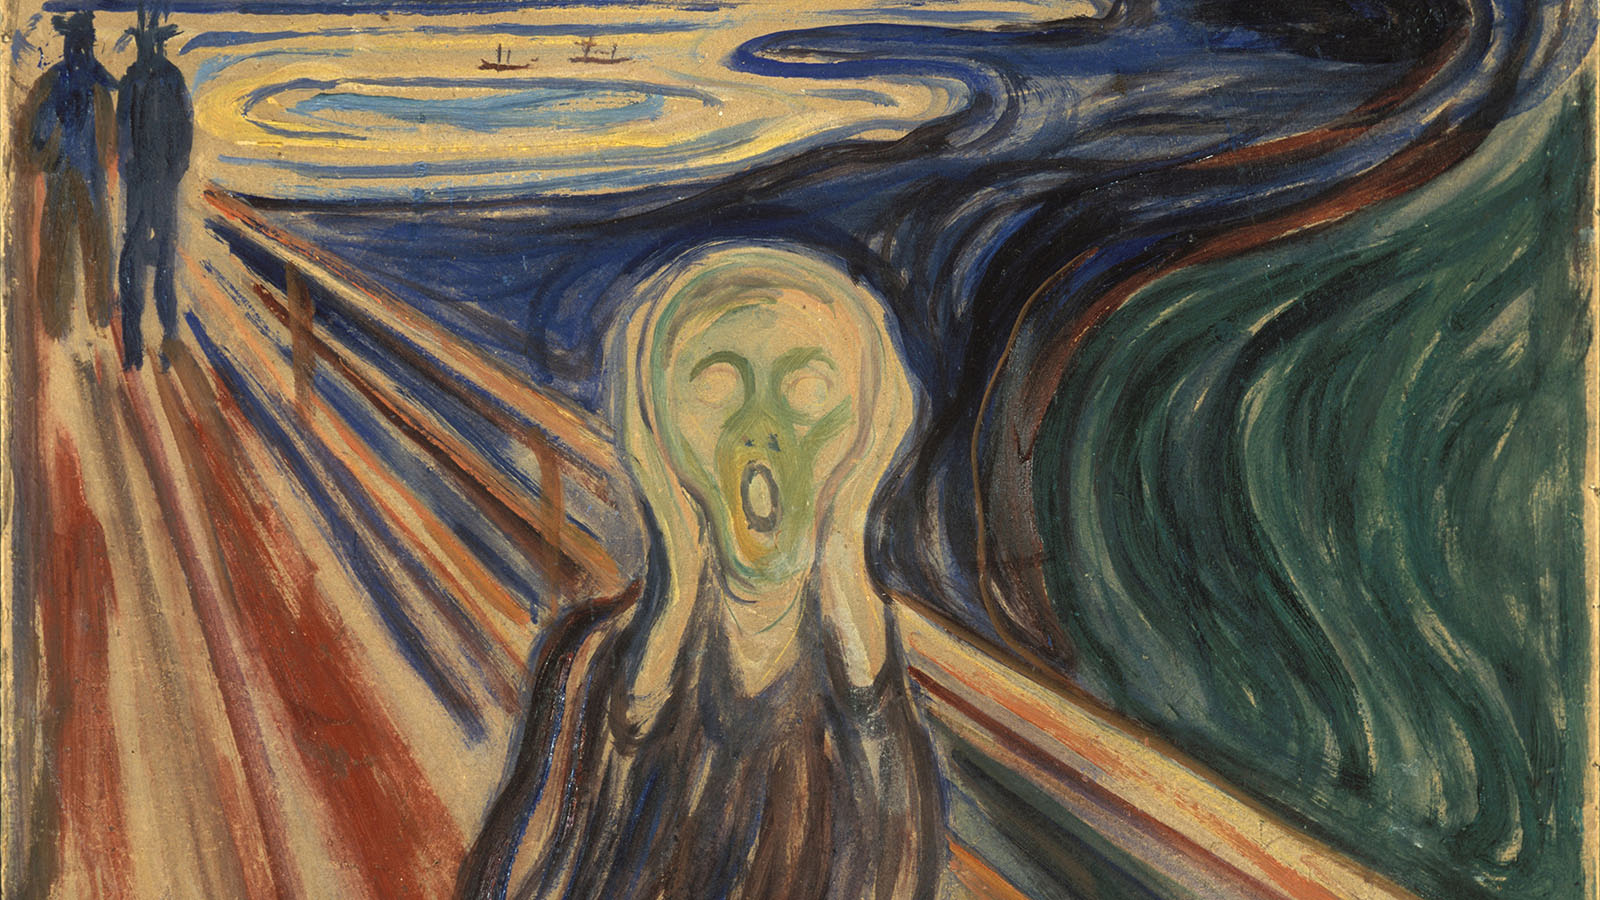 The Scream painting by Edvard Munch.